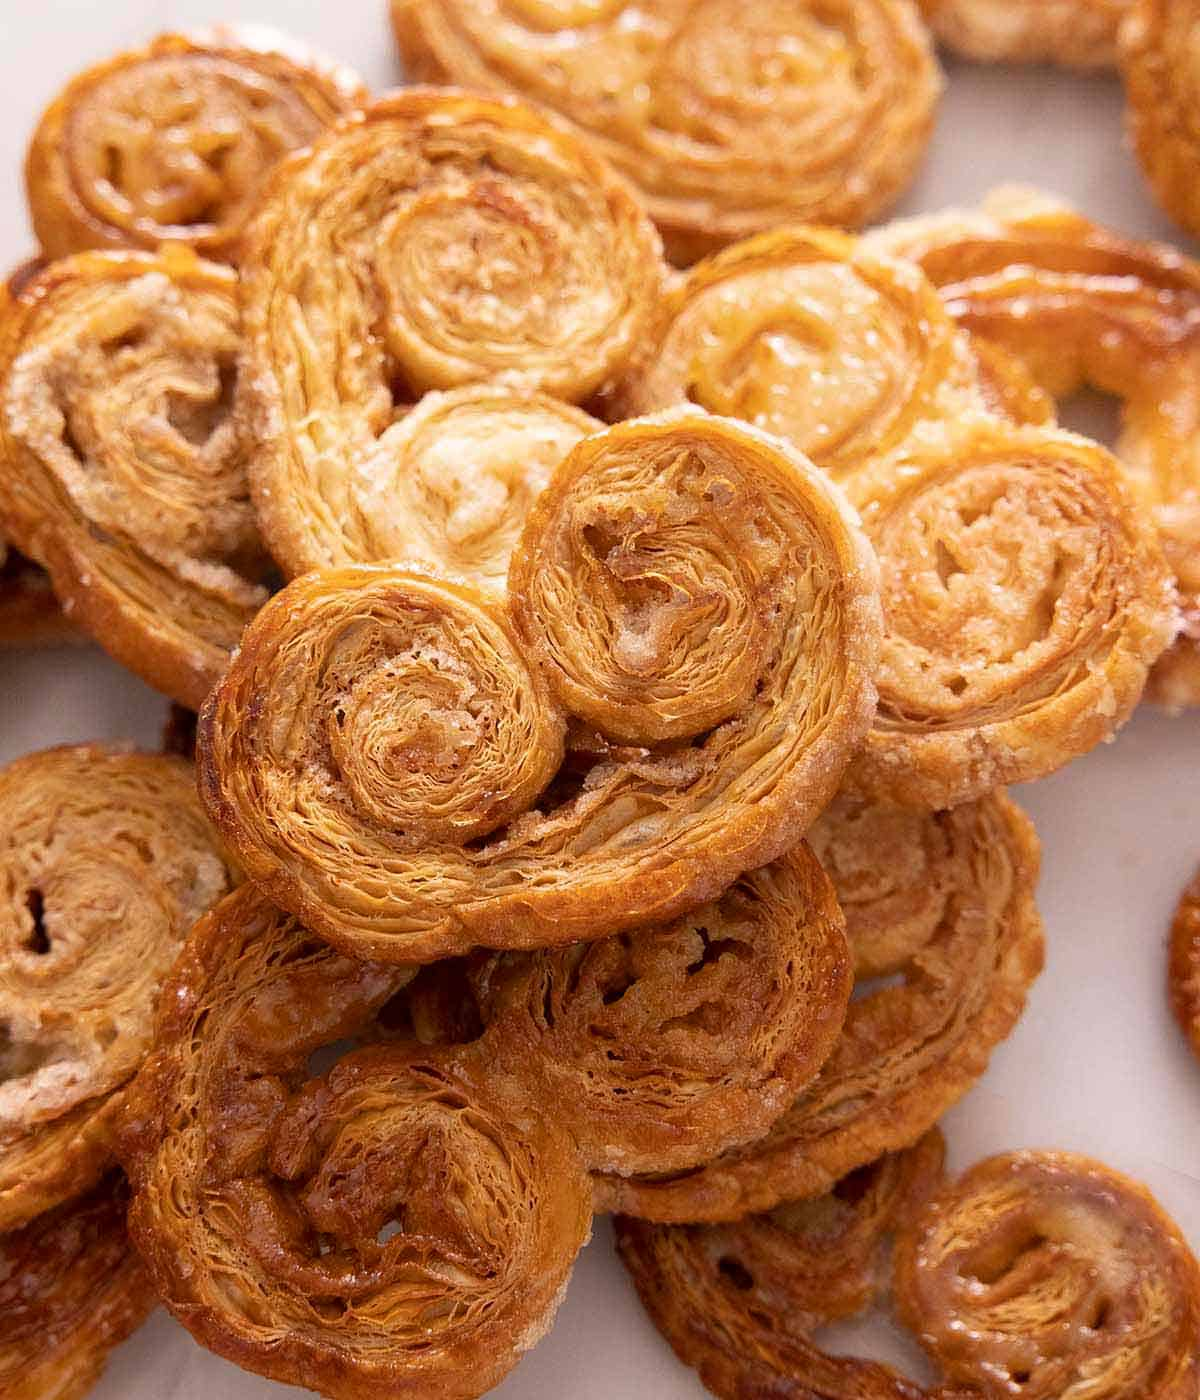 A pile of palmiers, stacked on top of each other with one pamier at the top.